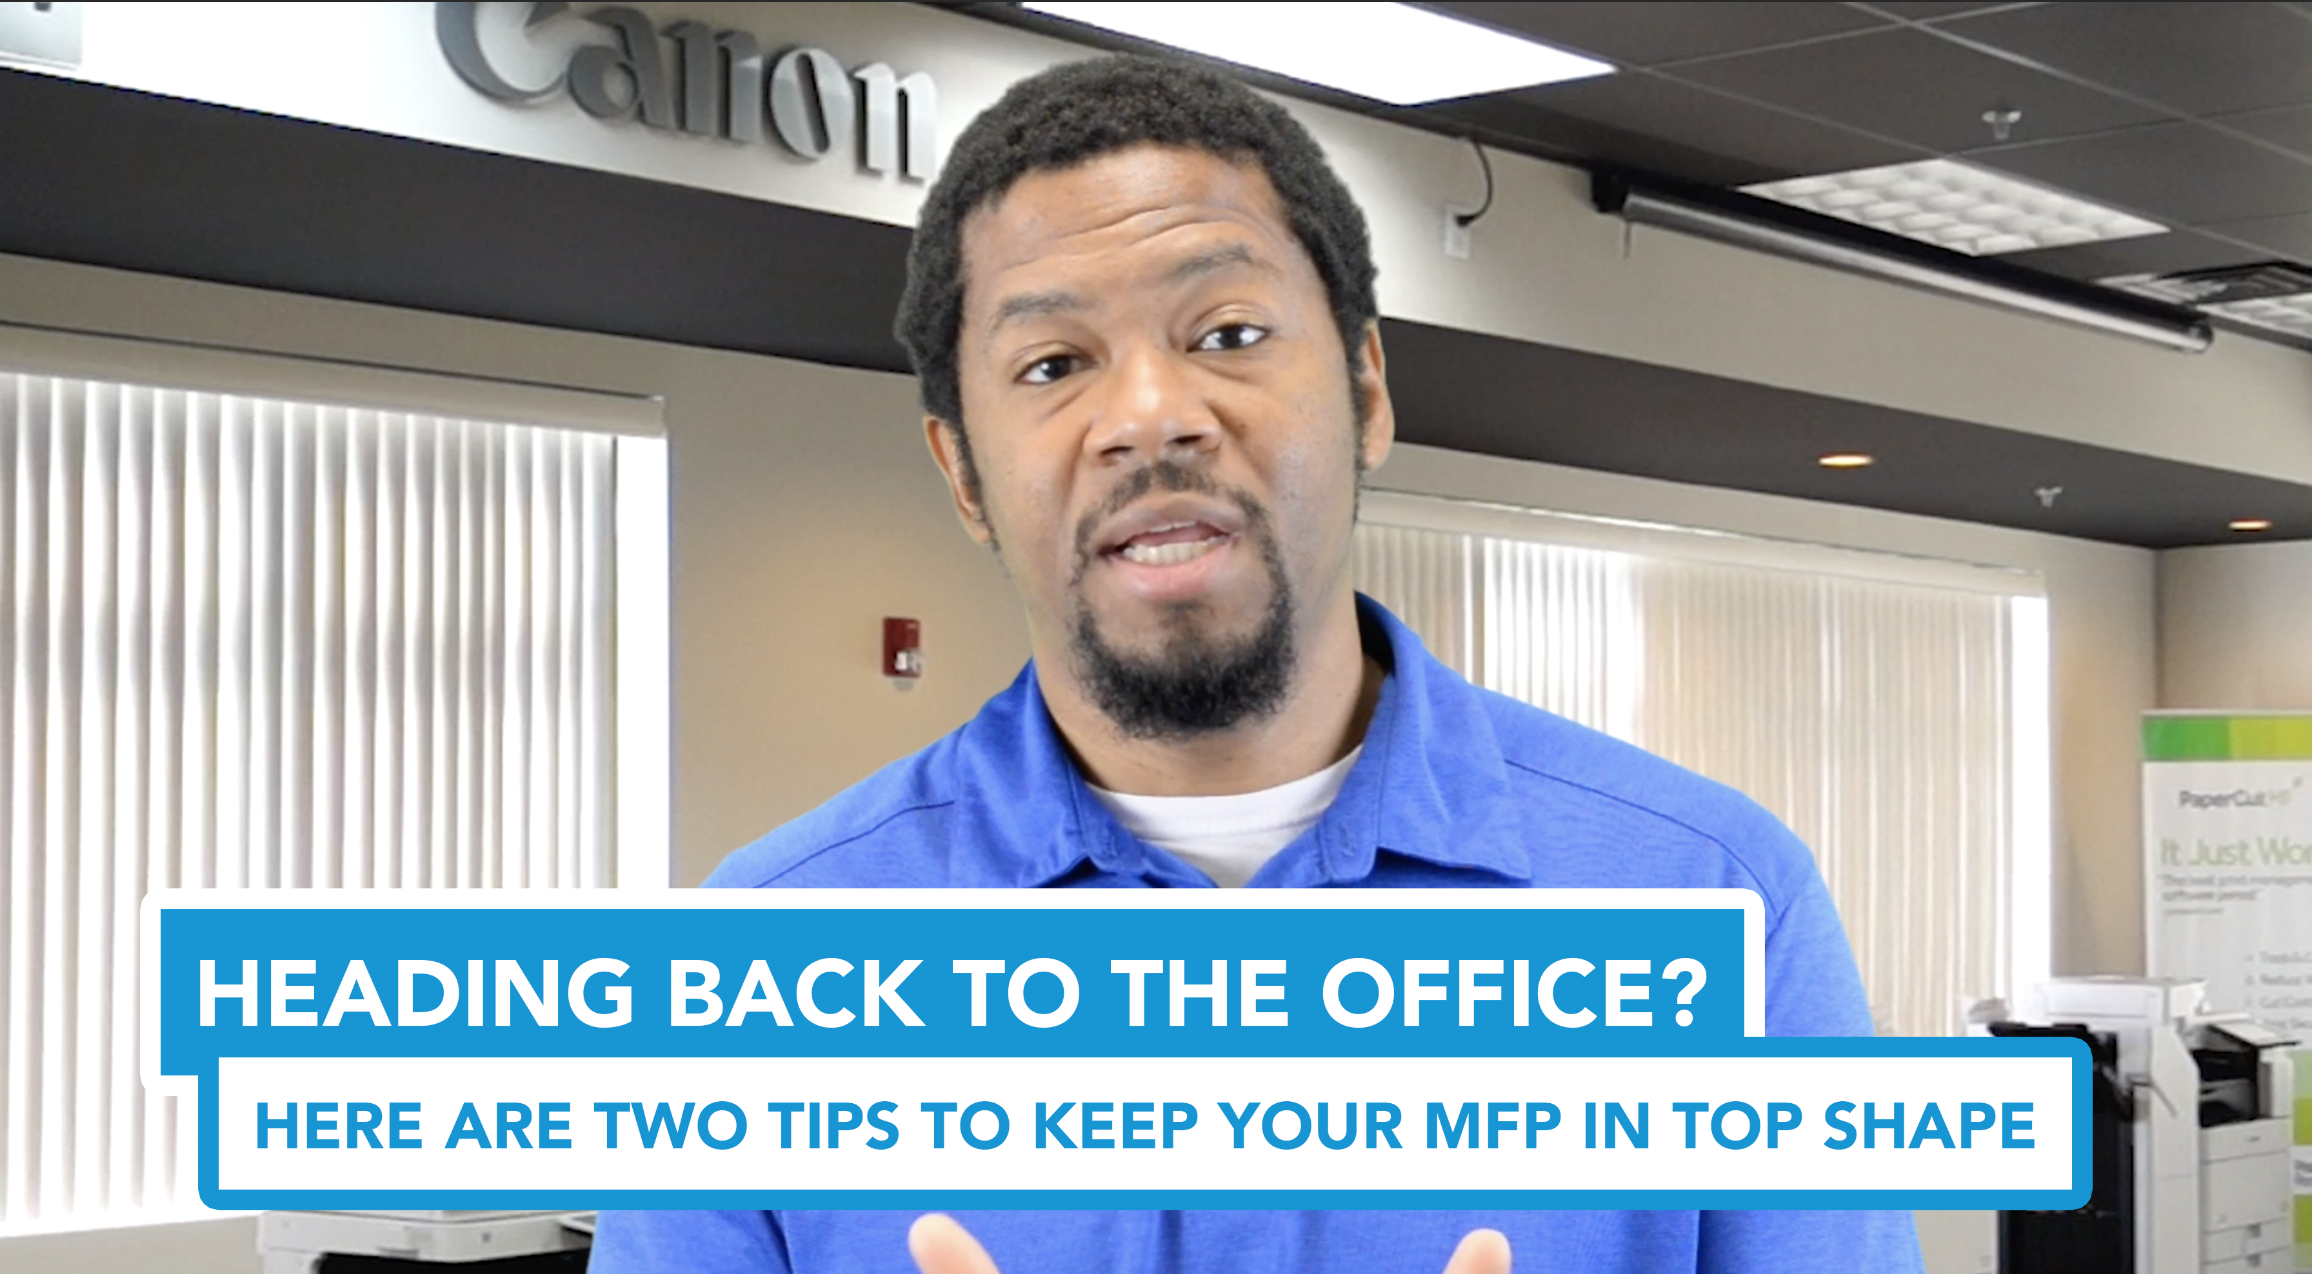 MFP TIps - Heading Back to the Office D2